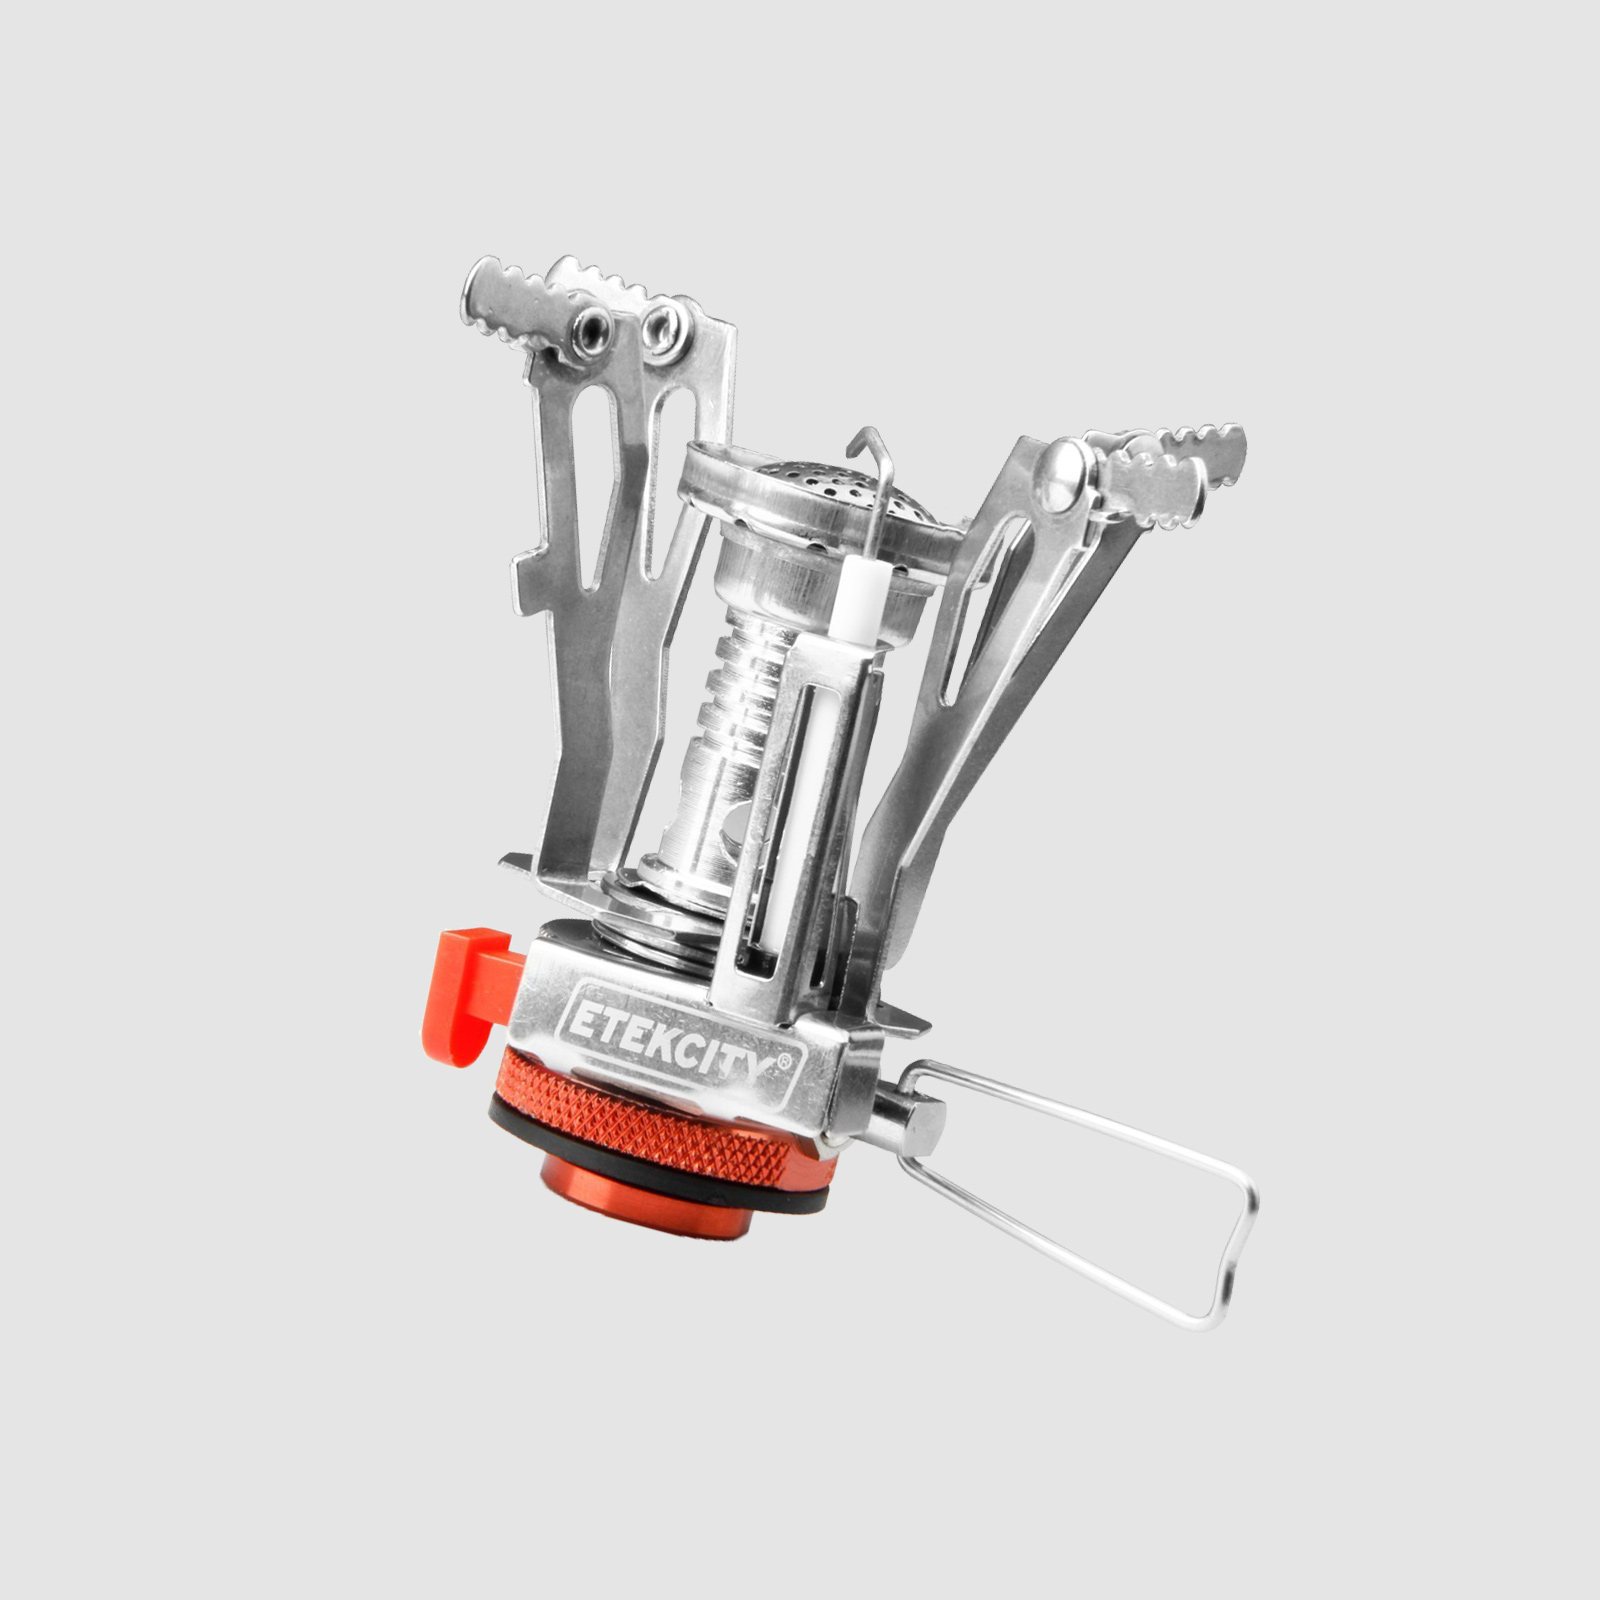 ETEKCITY Ultralight Backpacking Stove | $11 | Amazon